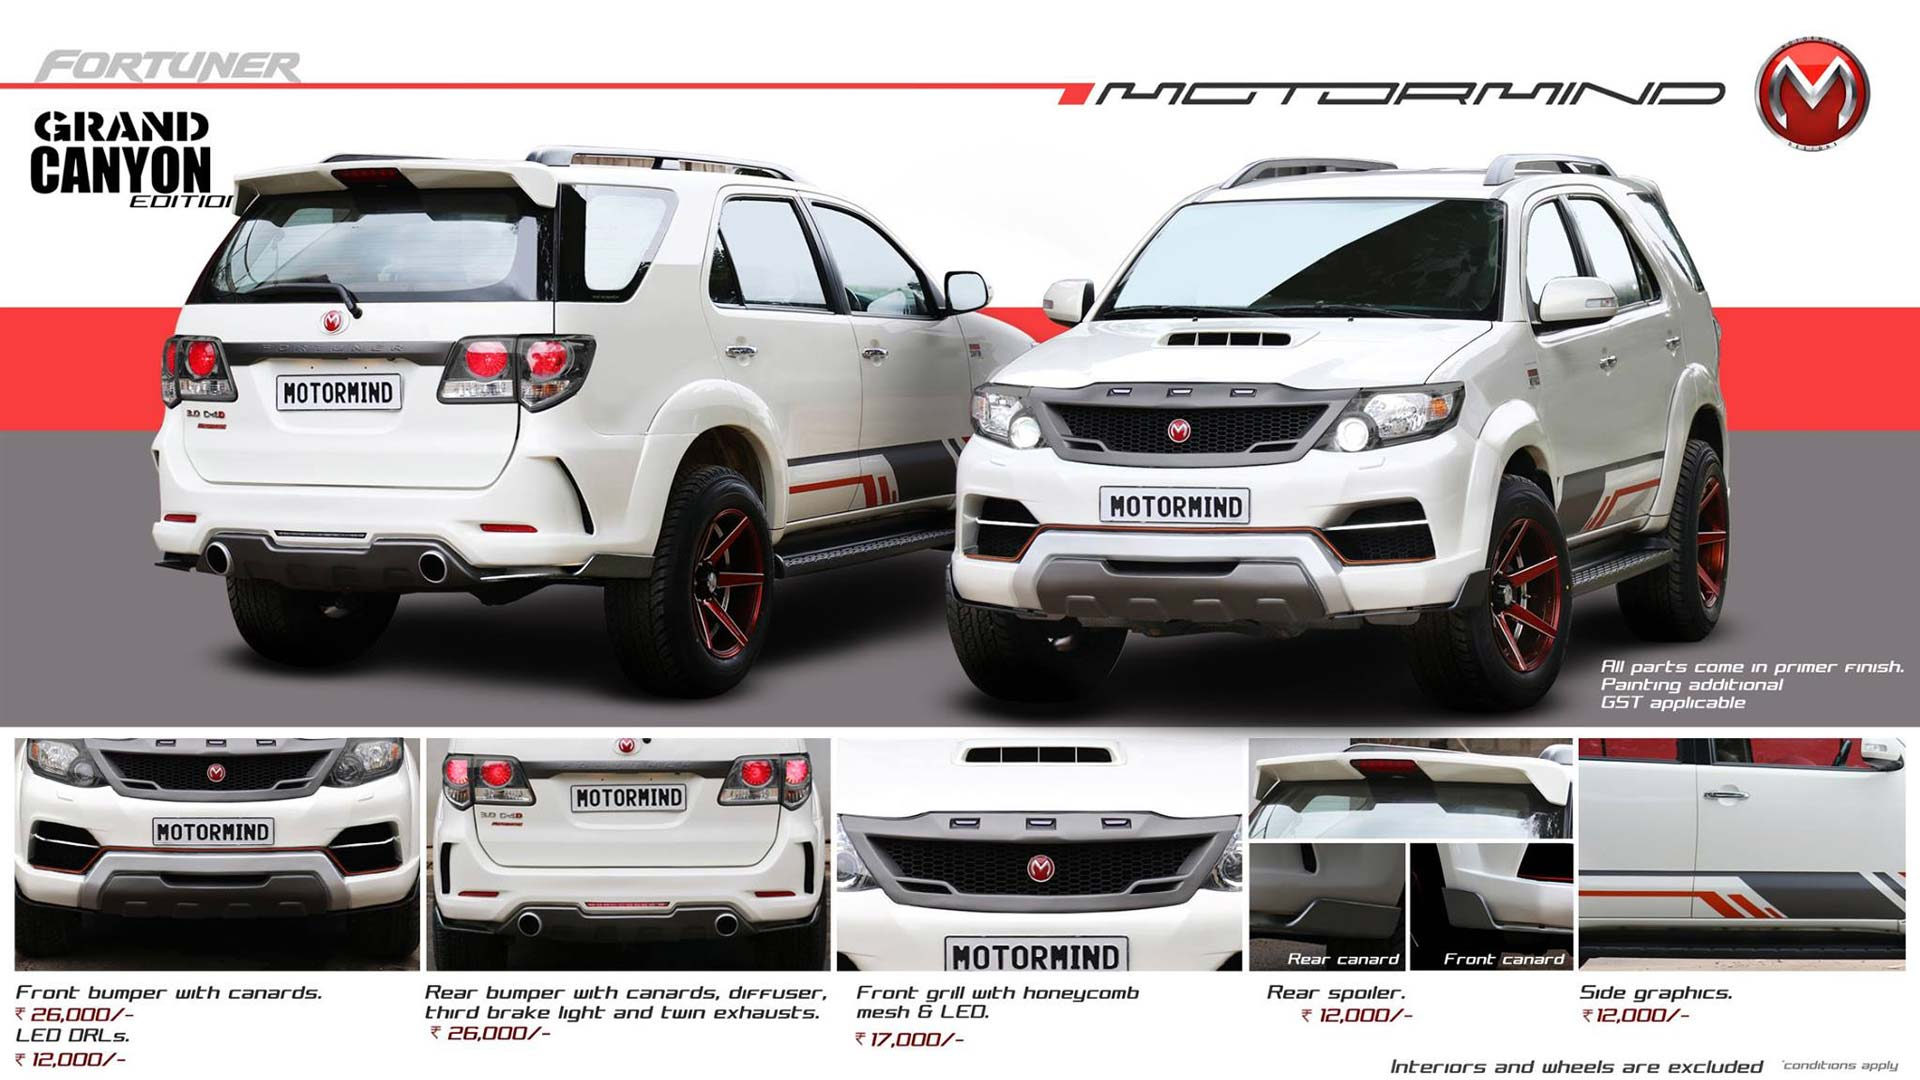 Toyota-Fortuner-Grand-Canyon-Edition-Fortuner-details